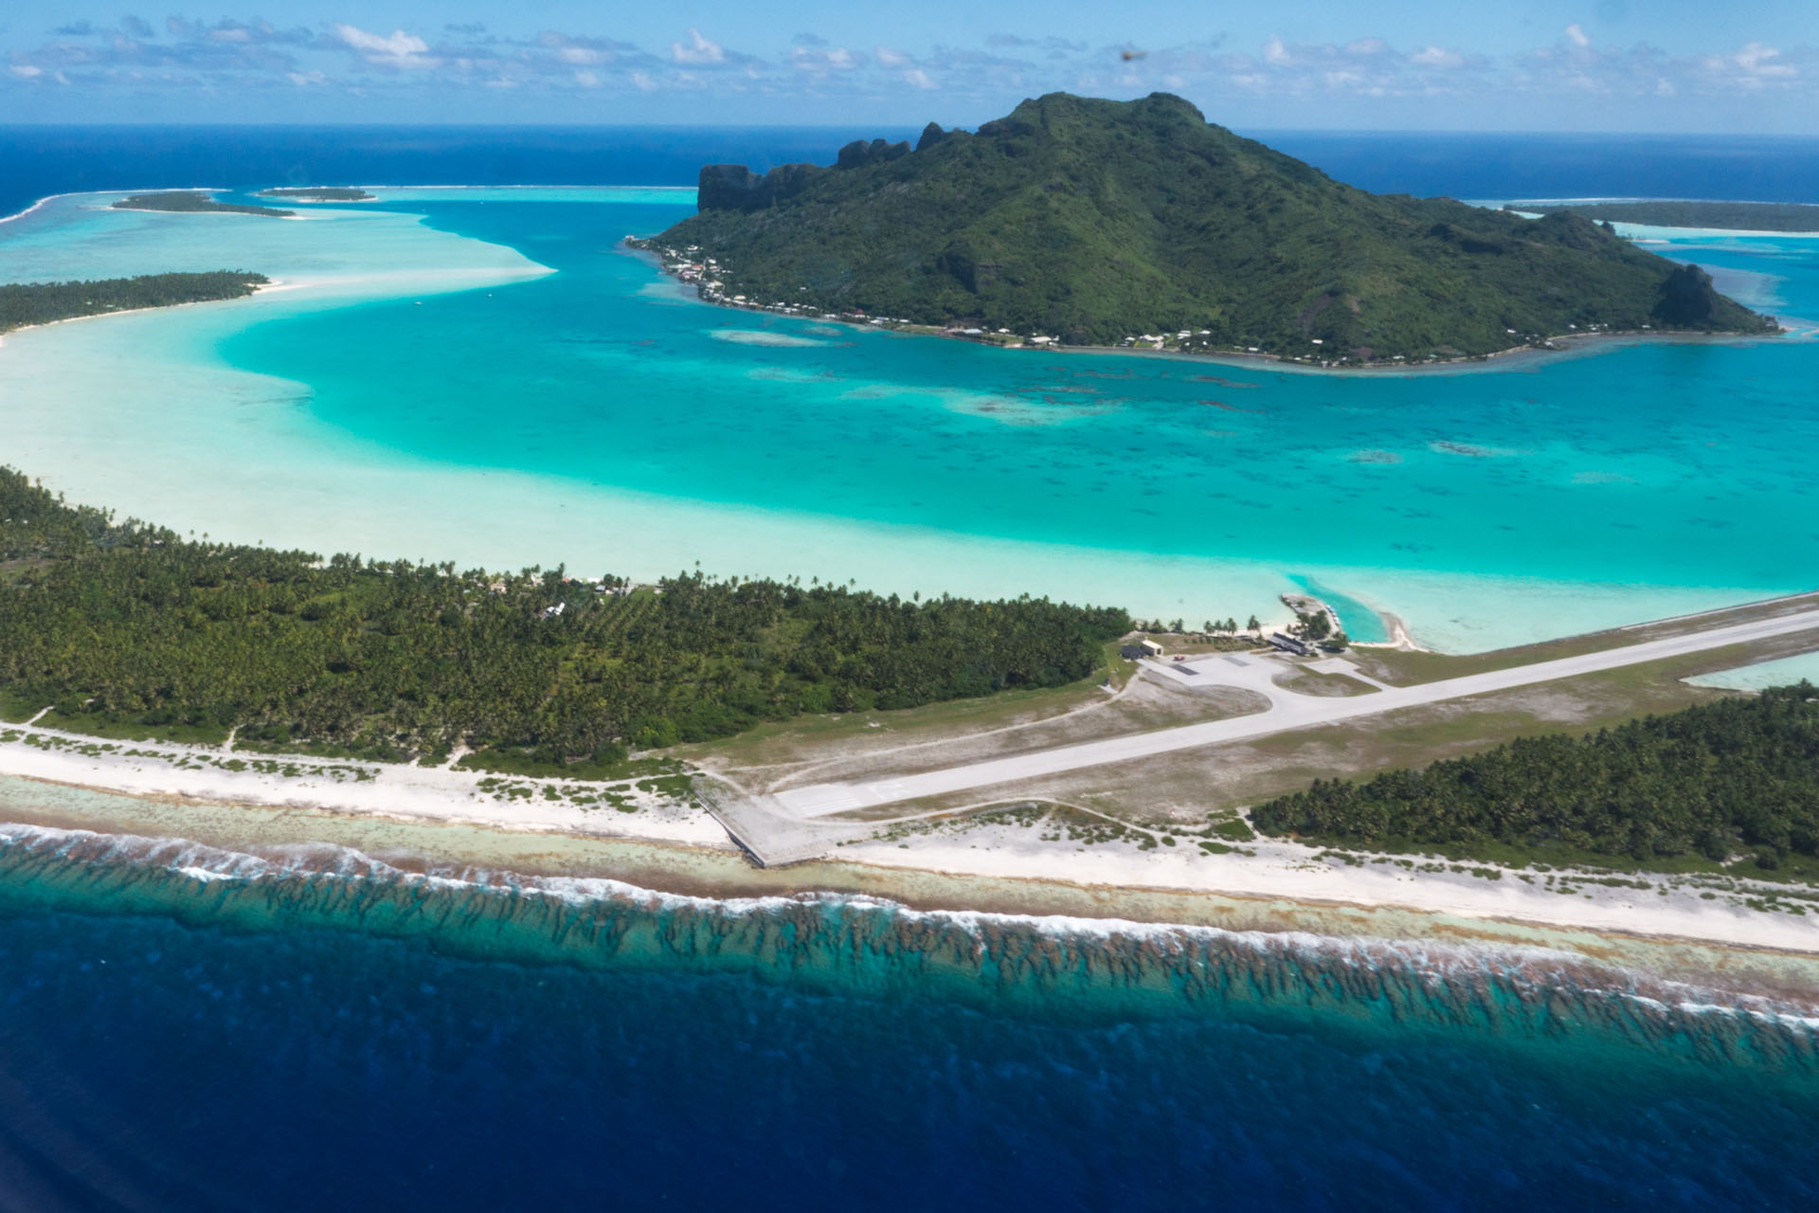 Maupiti and airport on Motu (small surrounding island)